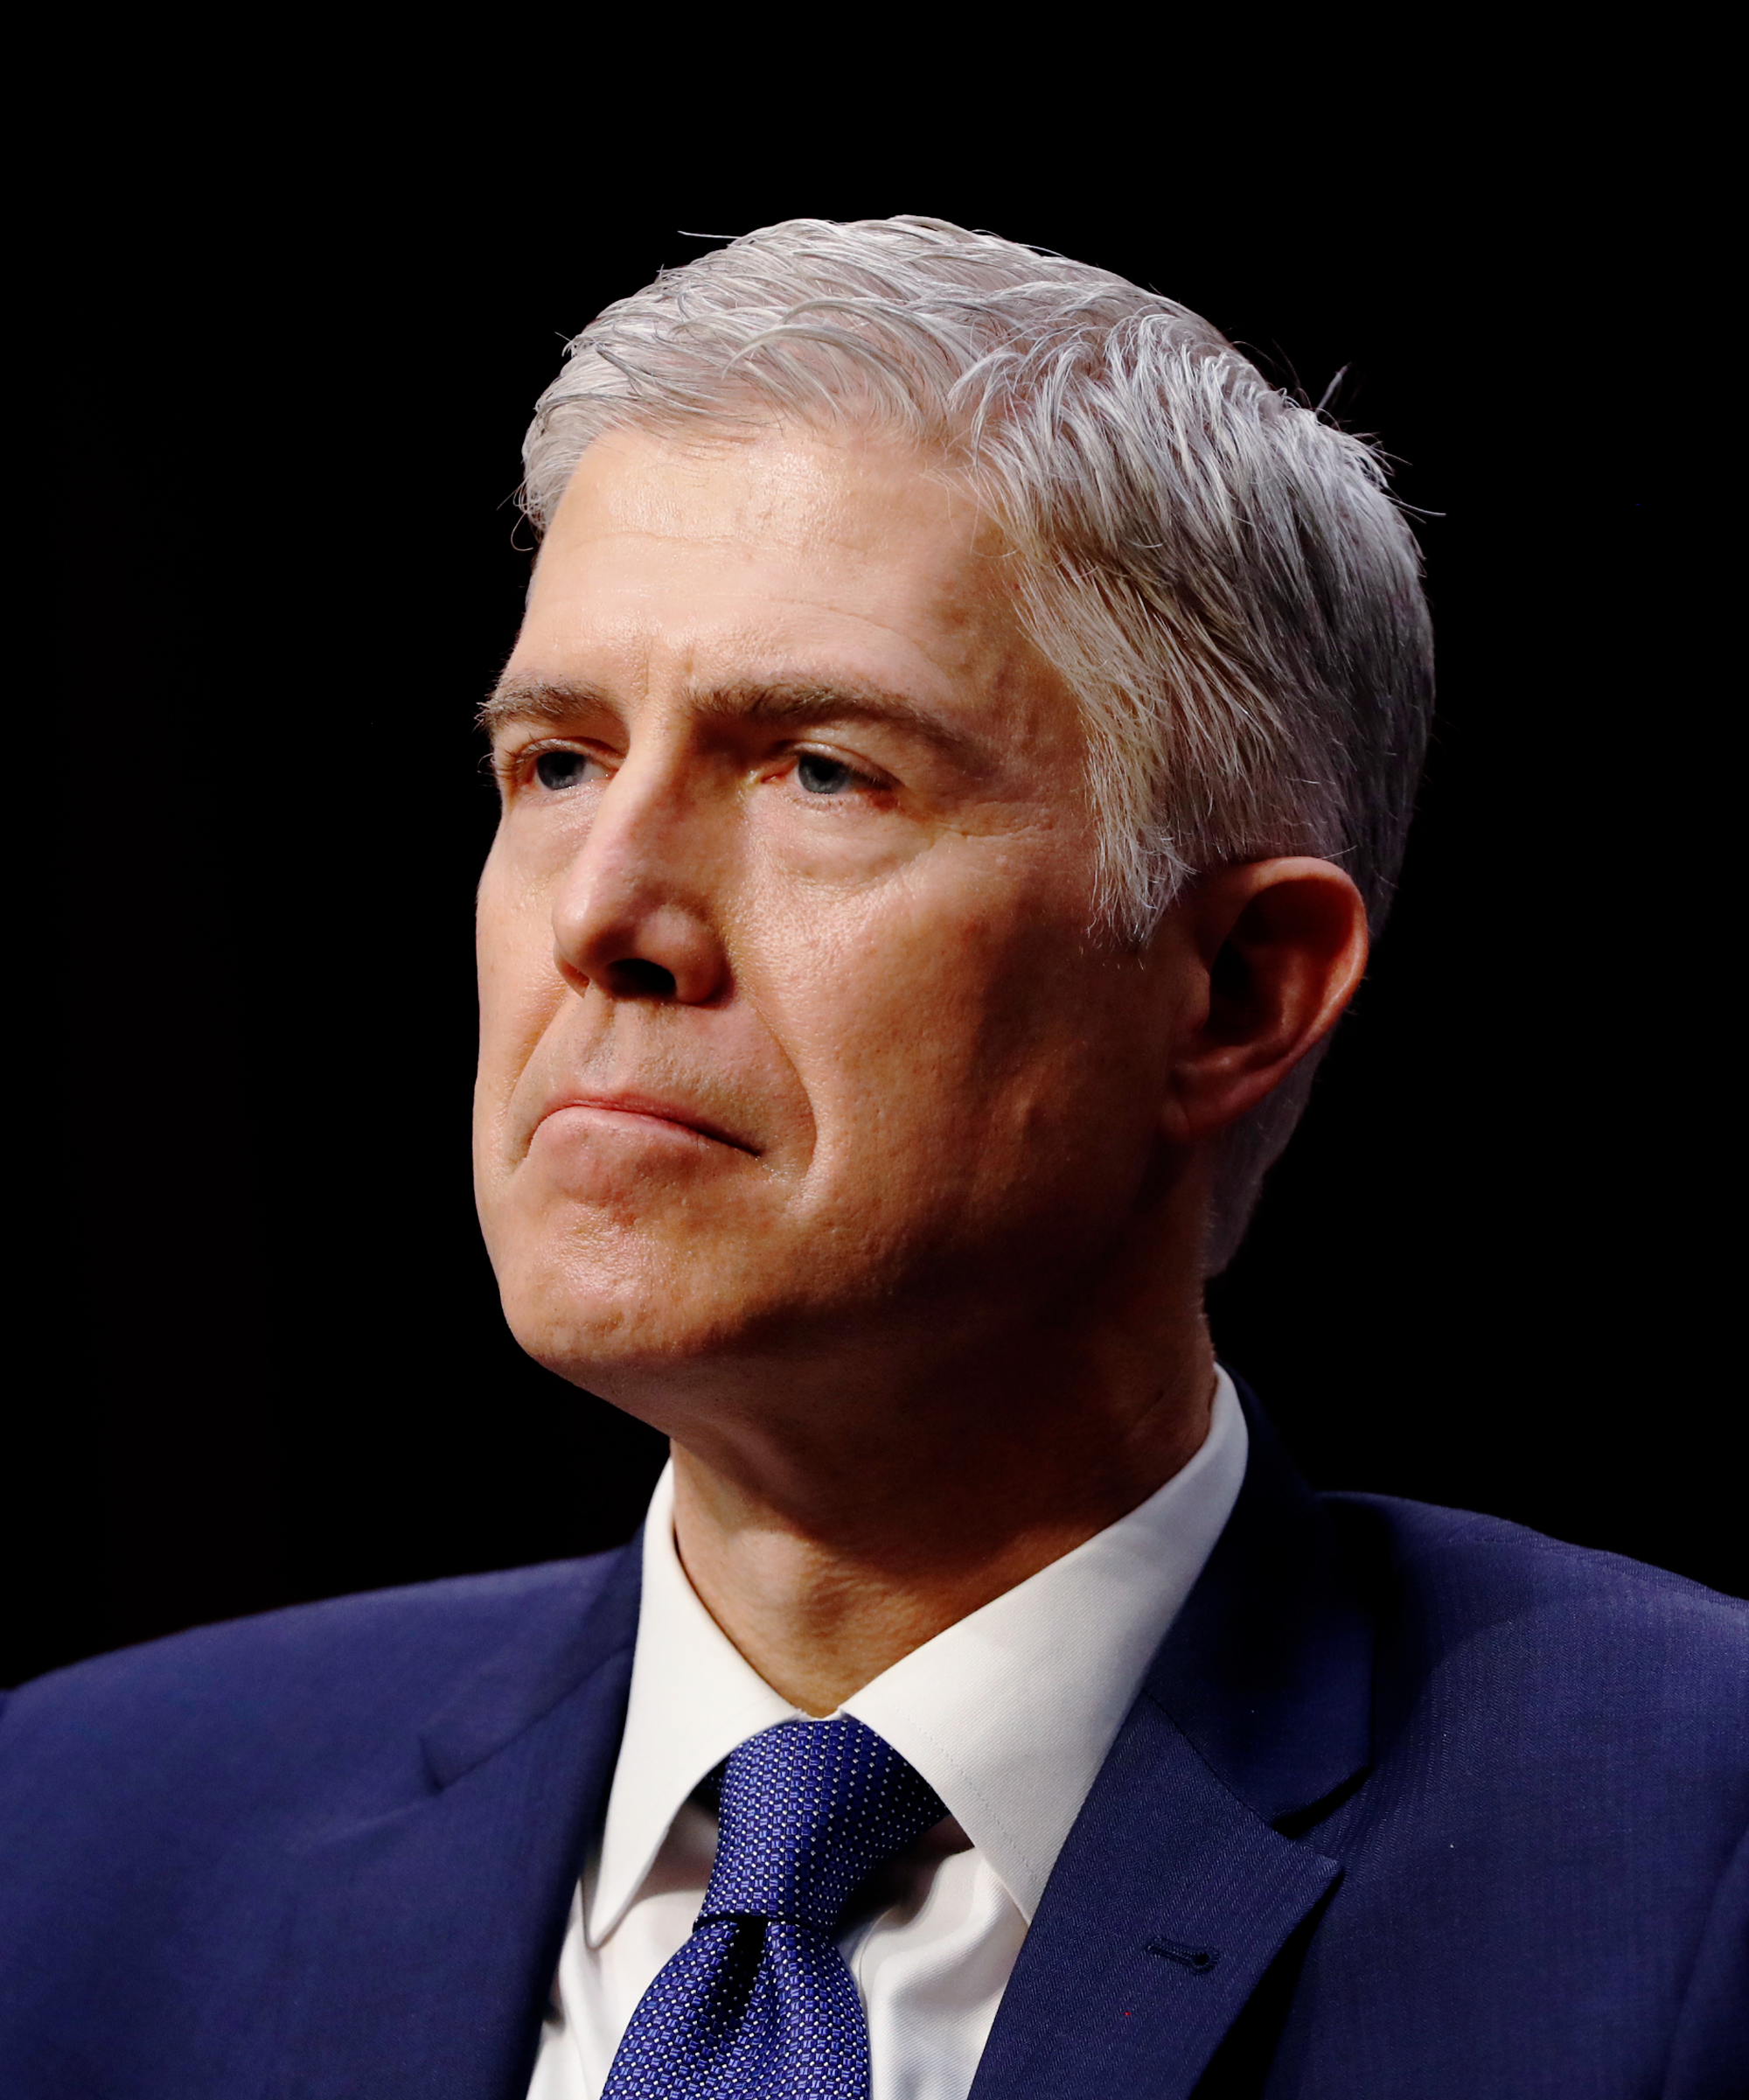 JUST IN: Senate Votes to Confirm Neil Gorsuch to Supreme Court